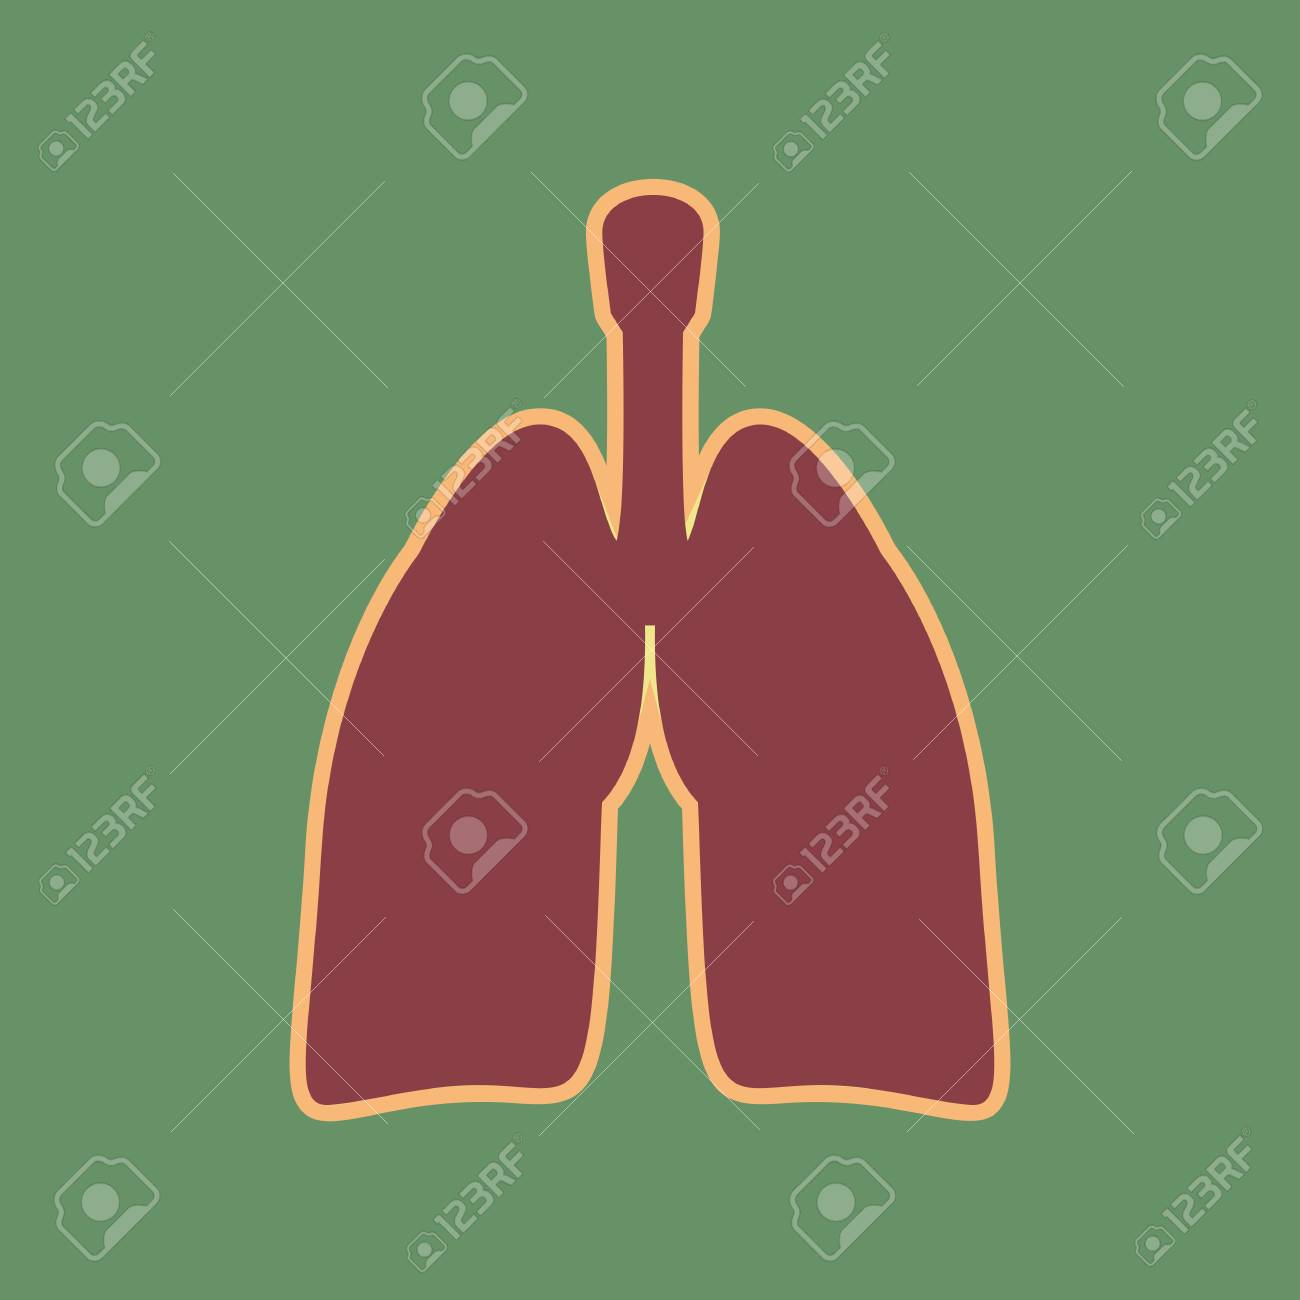 Human Anatomy Lungs Sign Vector Cordovan Icon And Mellow Apricot Halo With Light